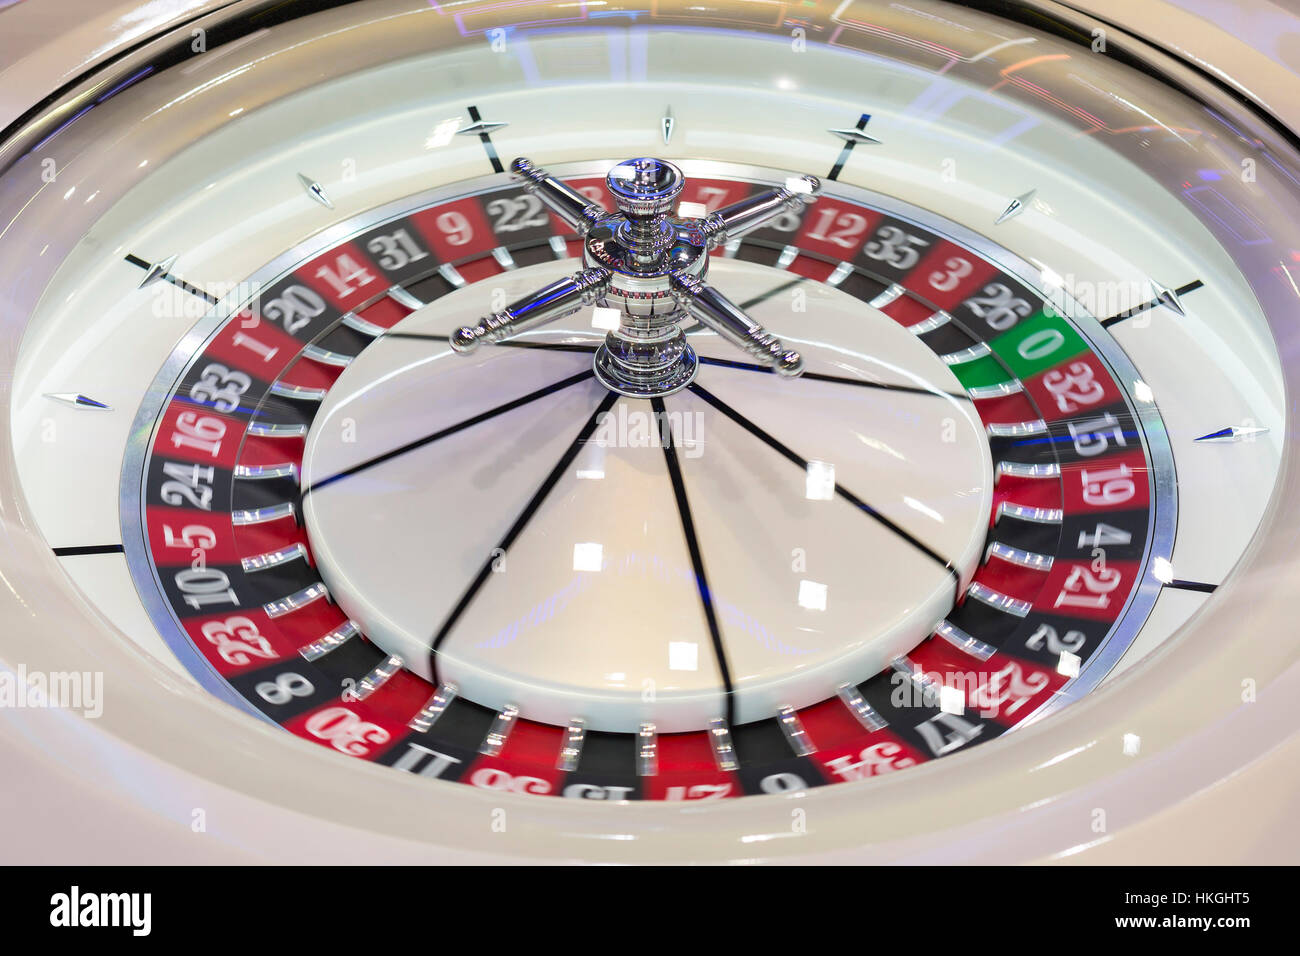 Wooden roulette buy black wooden roulette blackjack table led - Modern Roulette Table In Casino Ball In The Rotating Gambling Machine Colourful Roulette Wheel